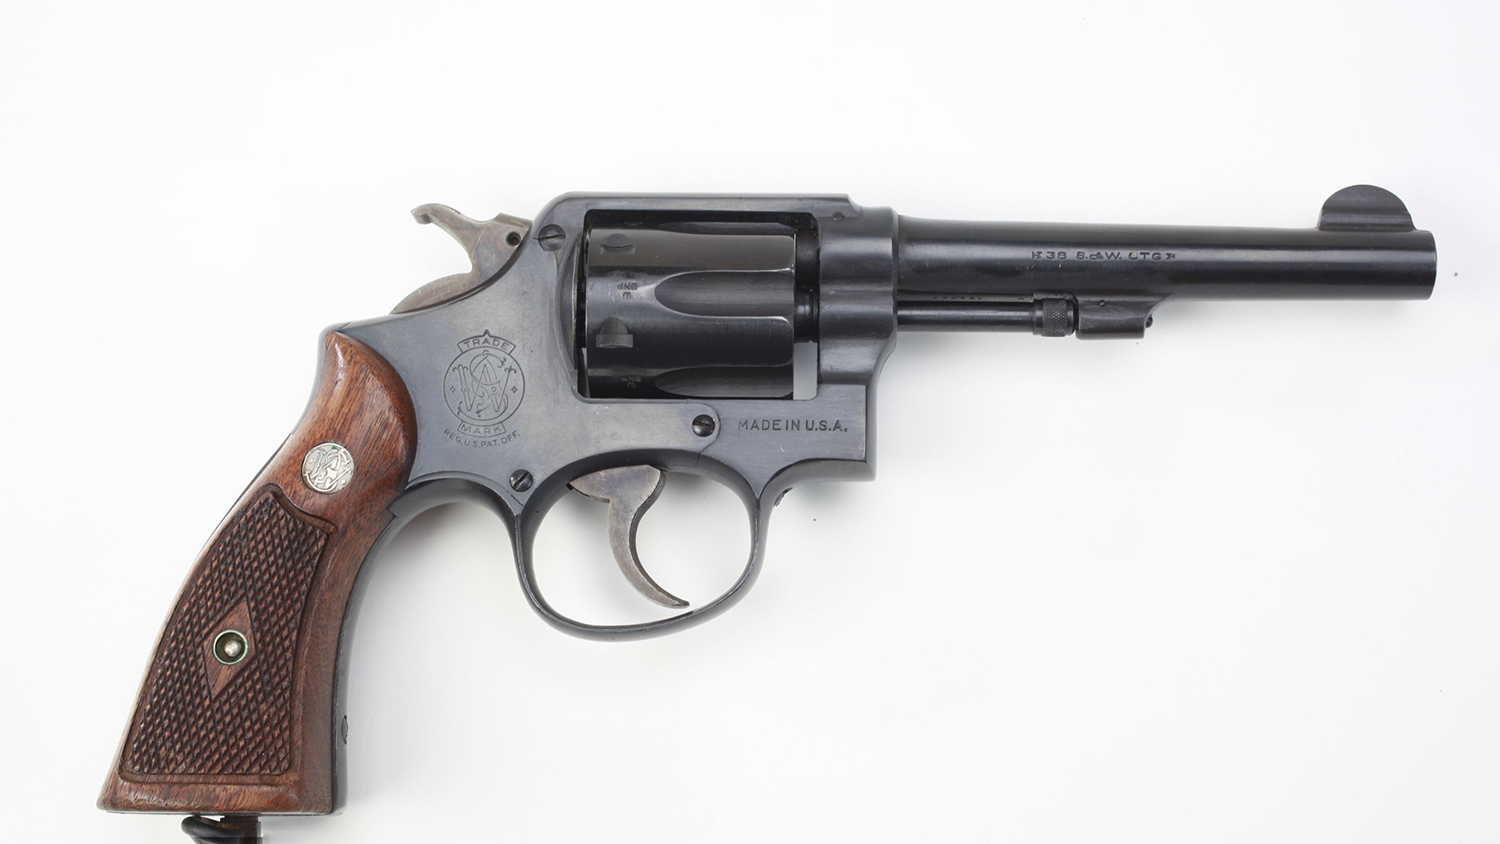 Gun of the Day: Smith & Wesson Victory Model Revolver